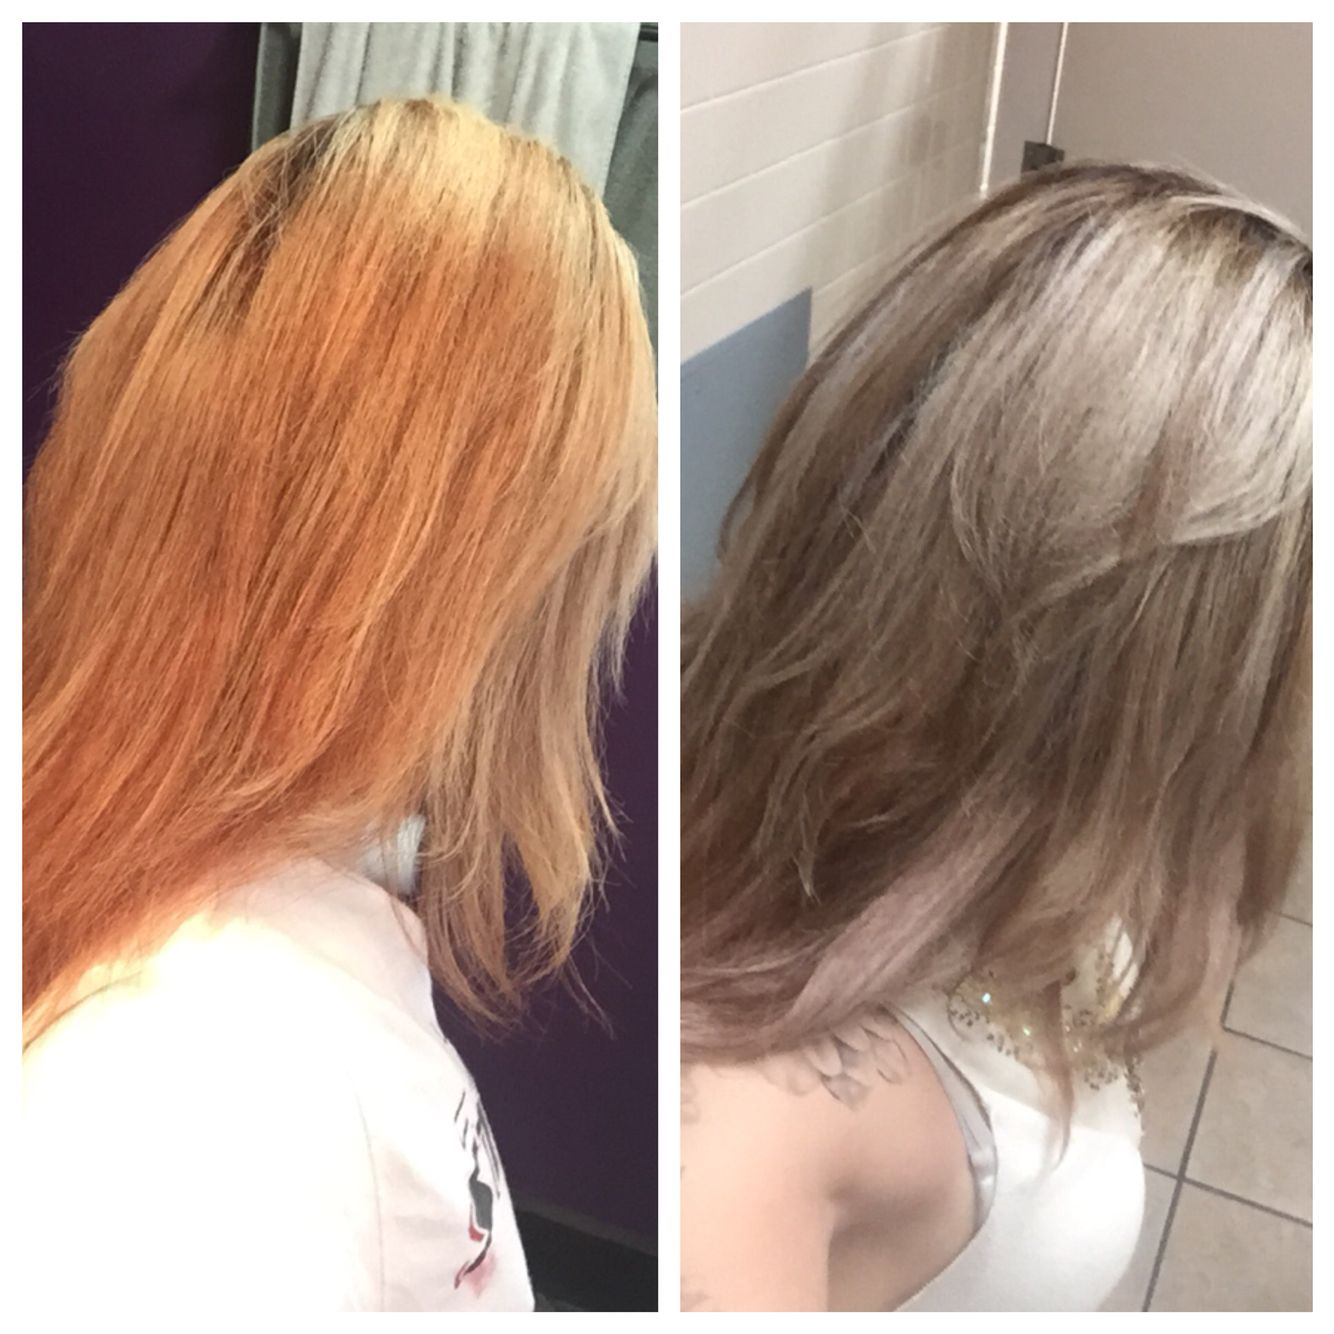 Wella T18 Toner Before And After Wella Toner Toner For Orange